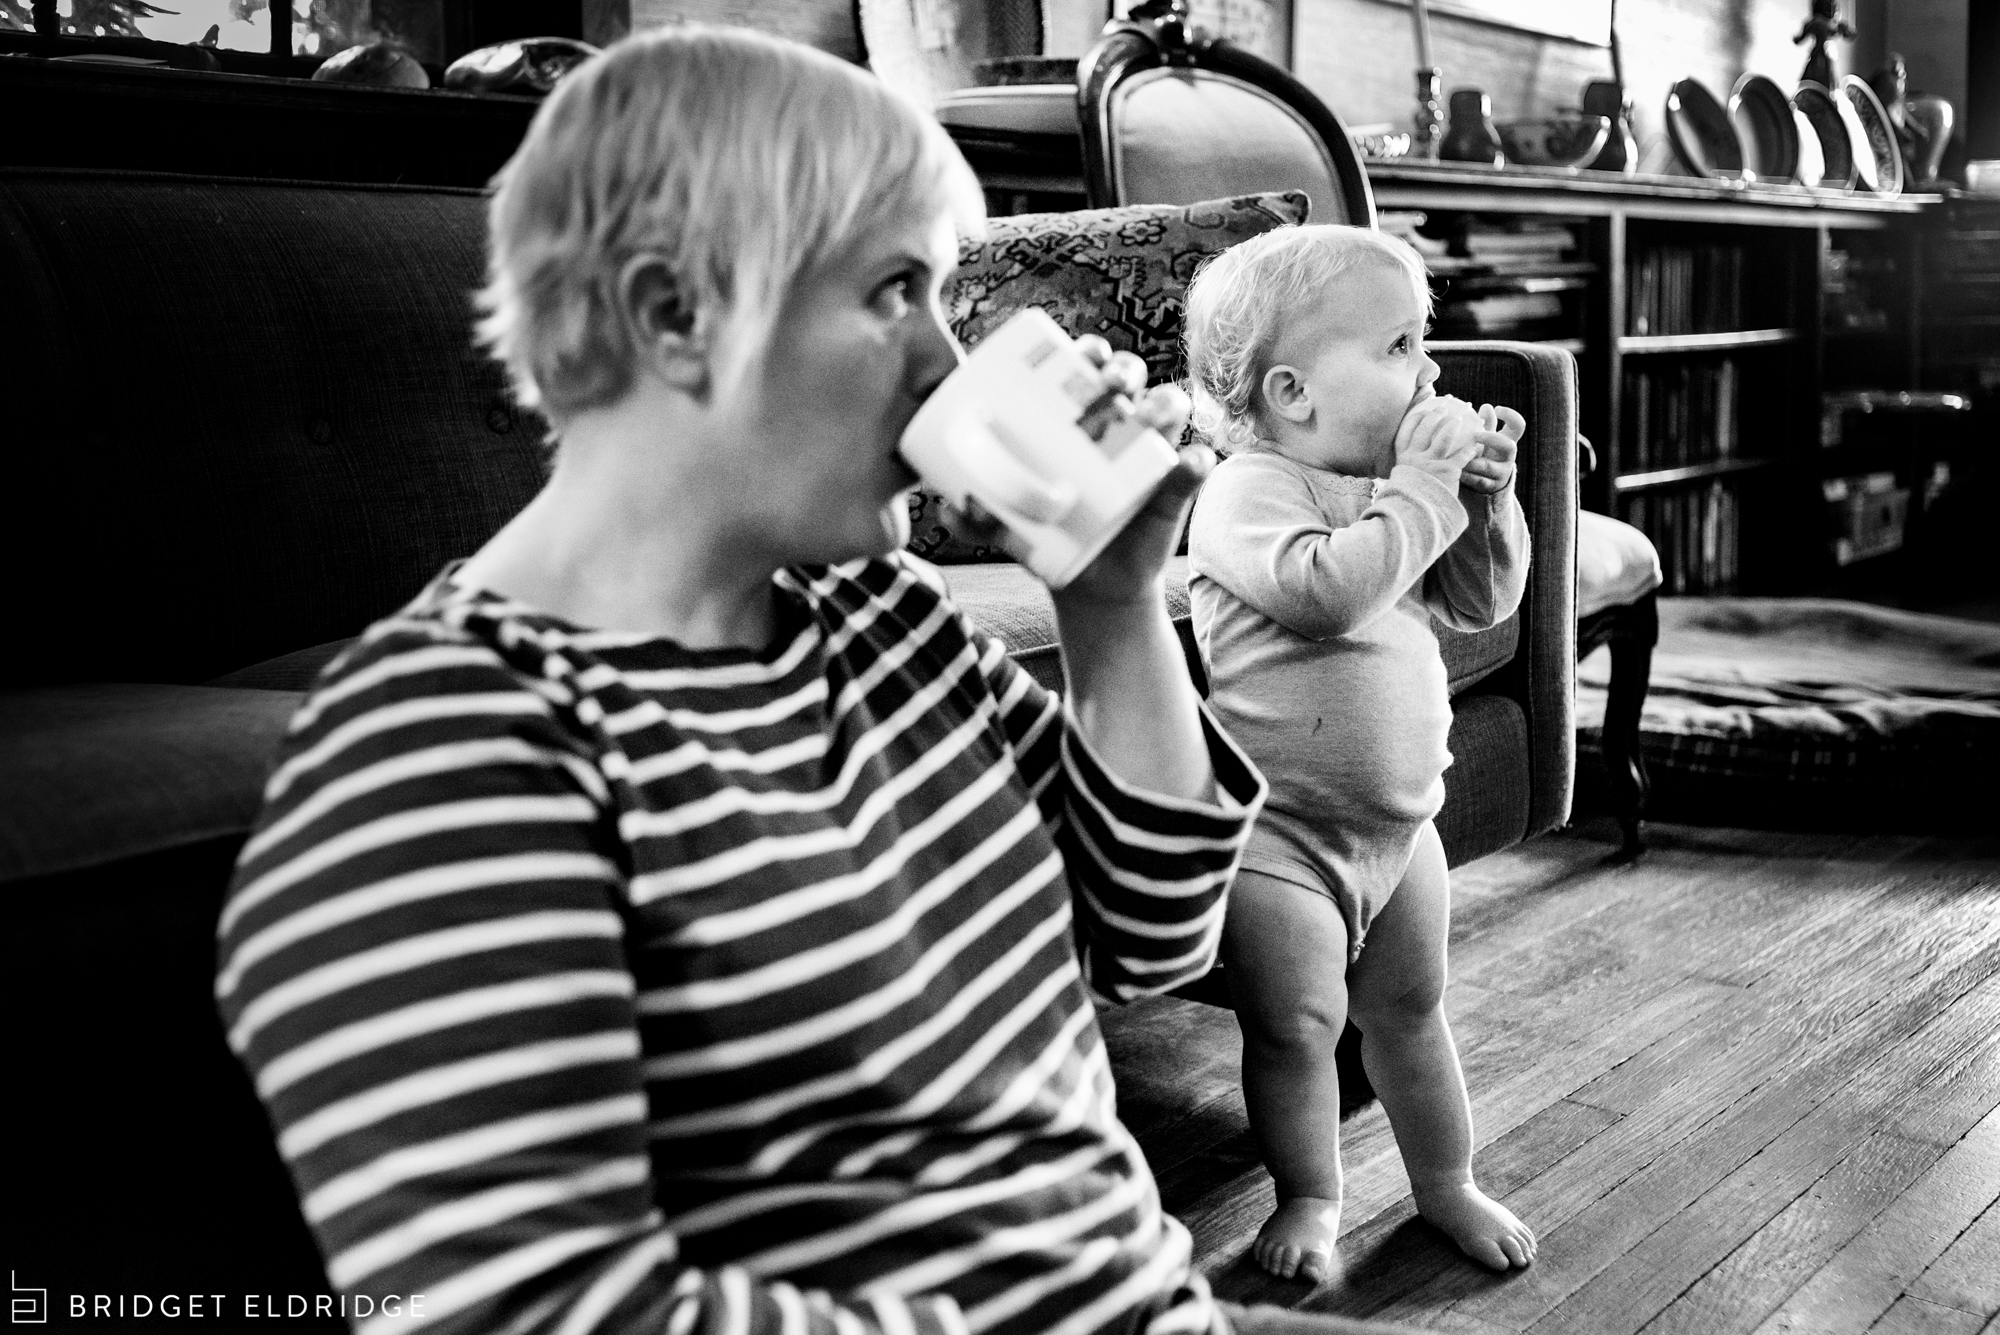 mom and baby mirror each other as they take a sio of a drink